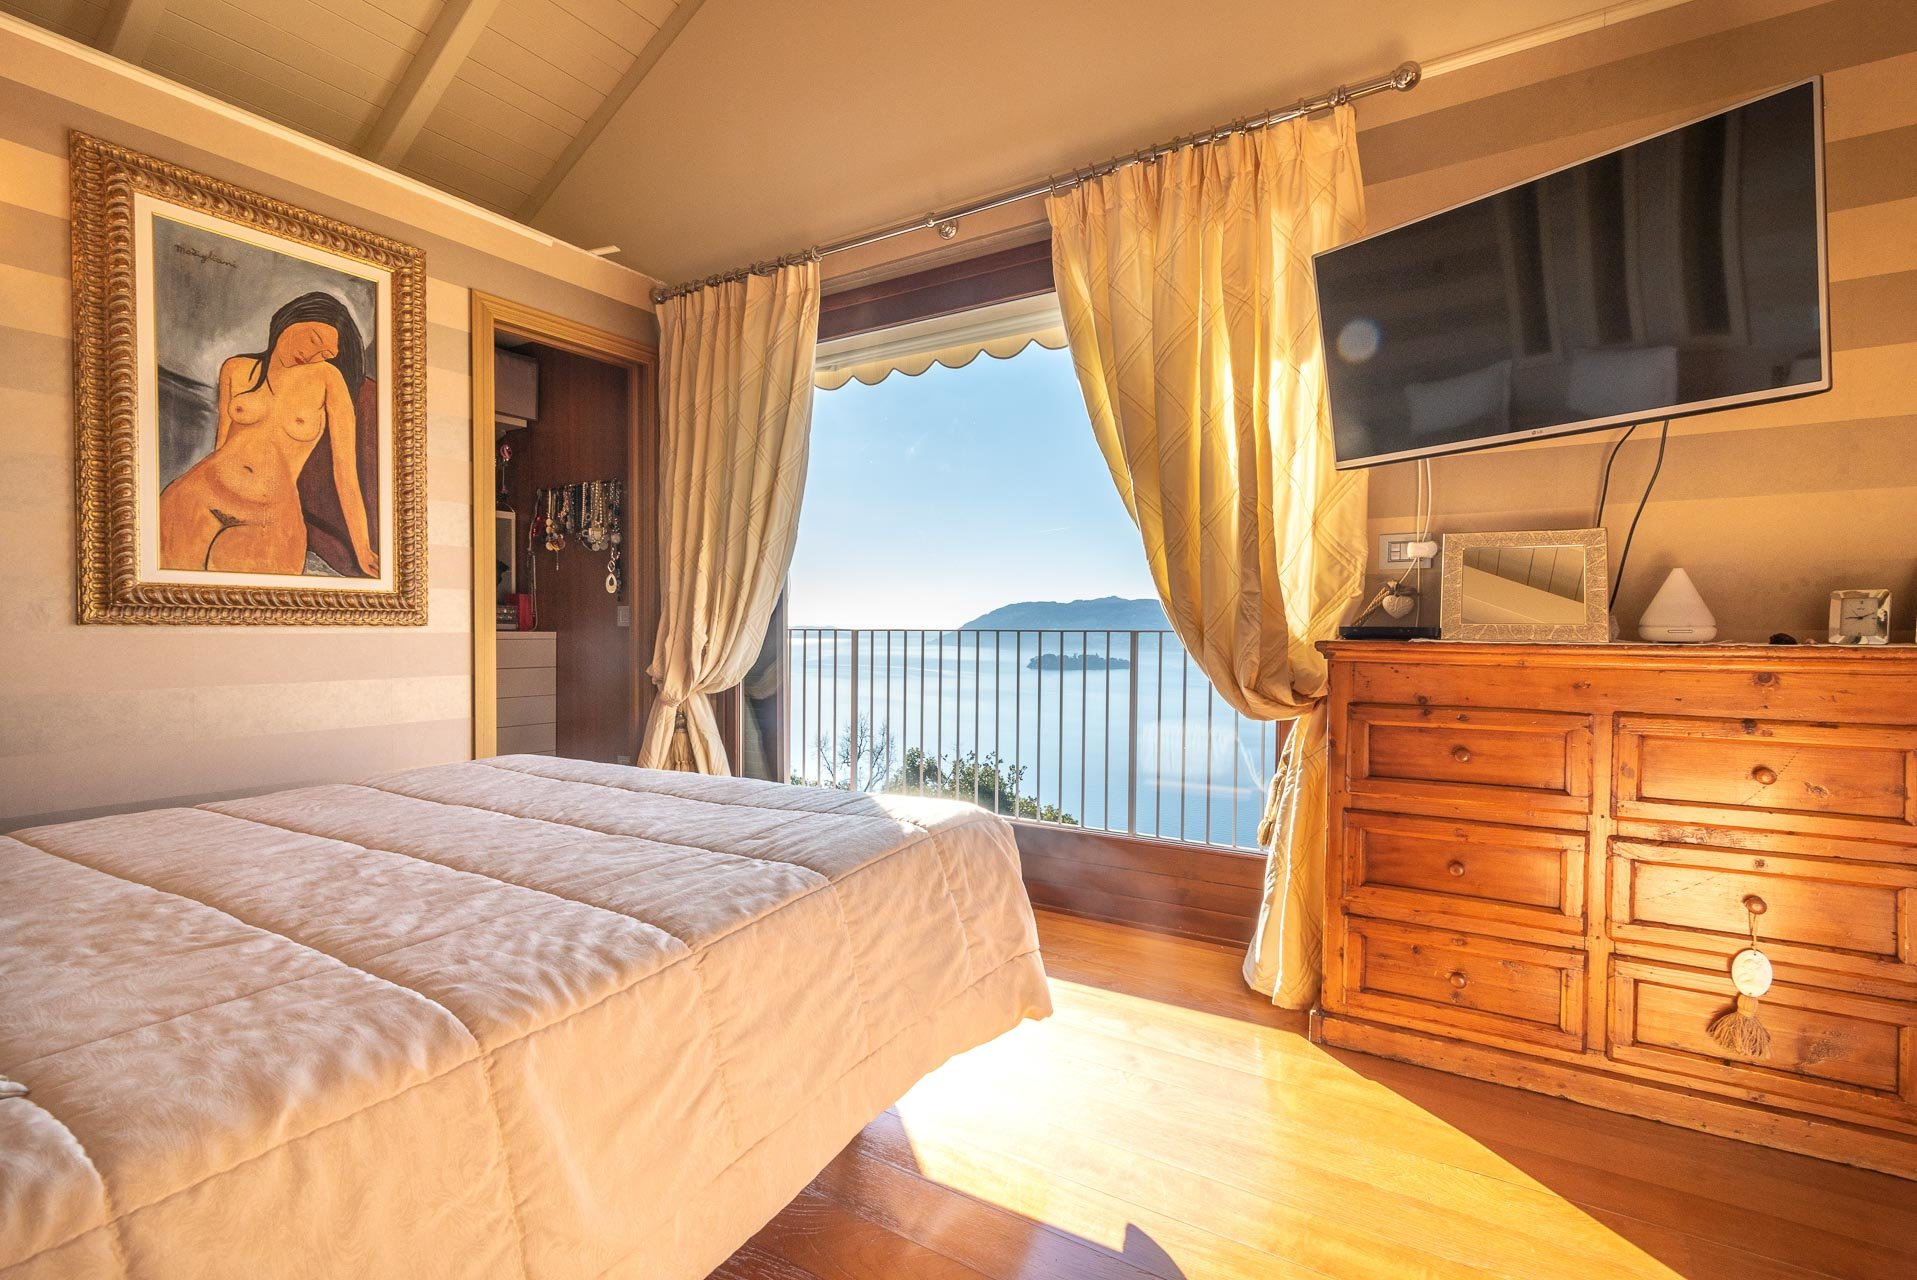 Modern villa with swimming pool for sale in Verbania - lake view bedroom